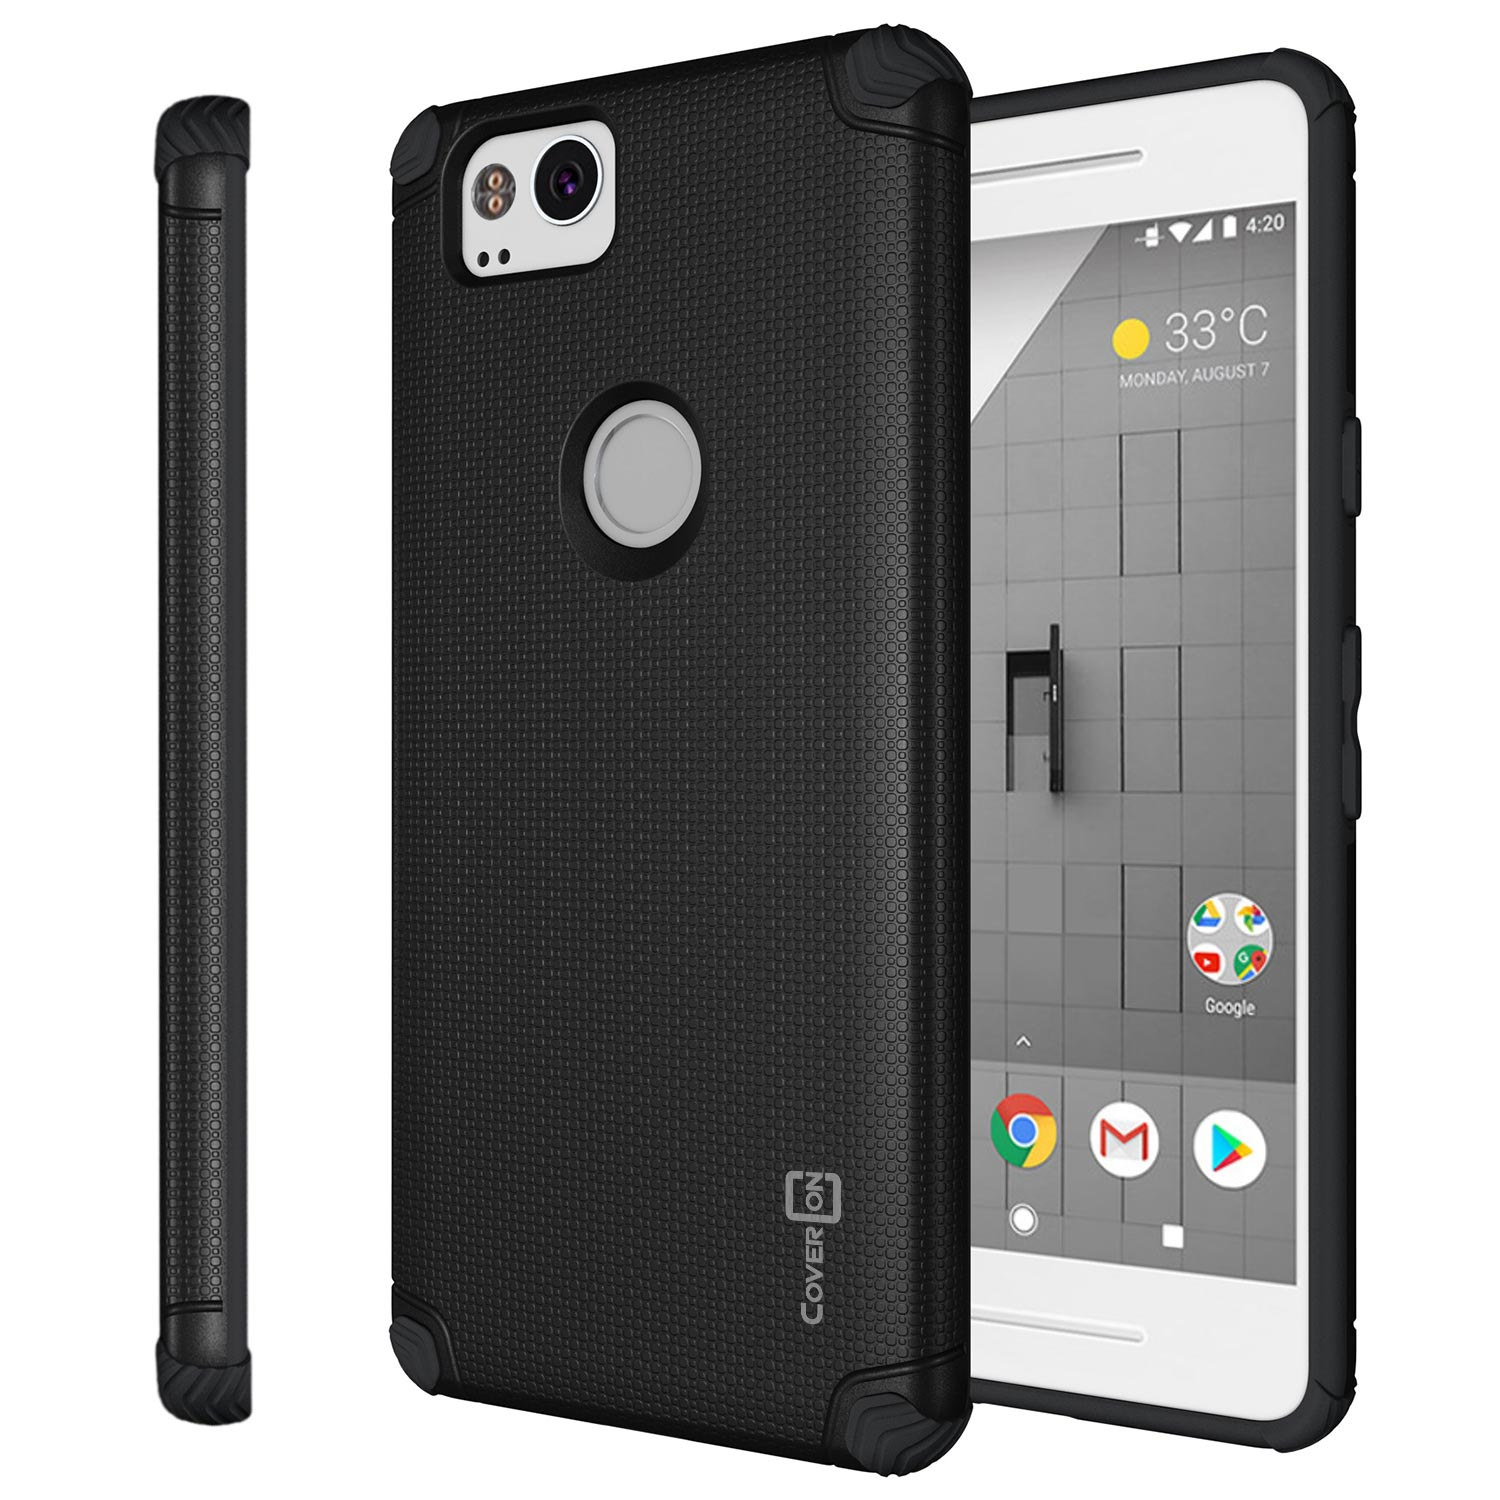 CoverON Google Pixel 2 Case, Bios Series Slim Modern Hard Phone Cover with Magnetic Mount compatibility